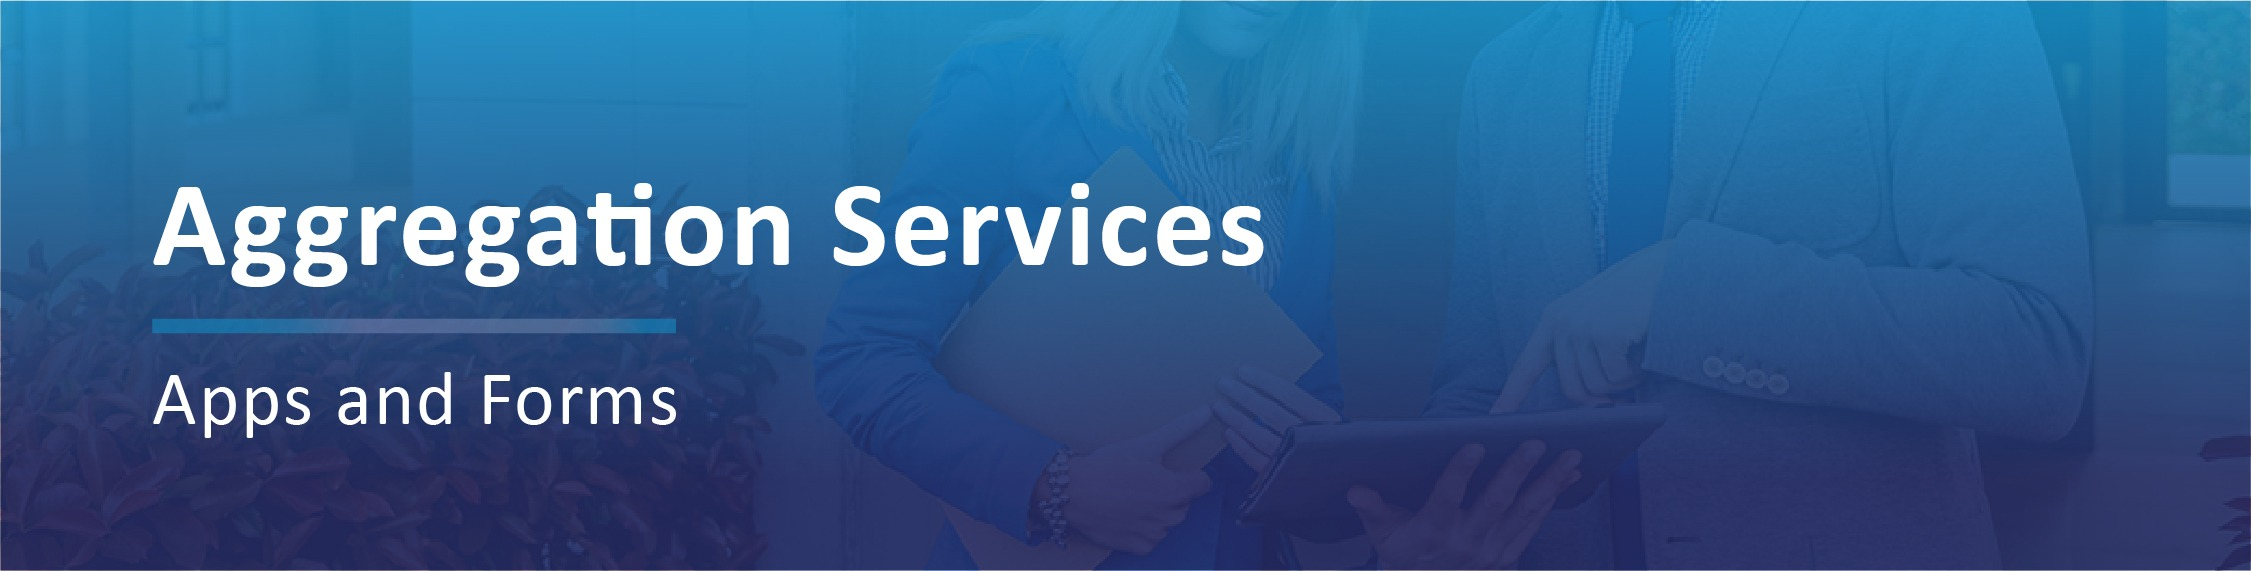 Aggregation Services Applications Banner